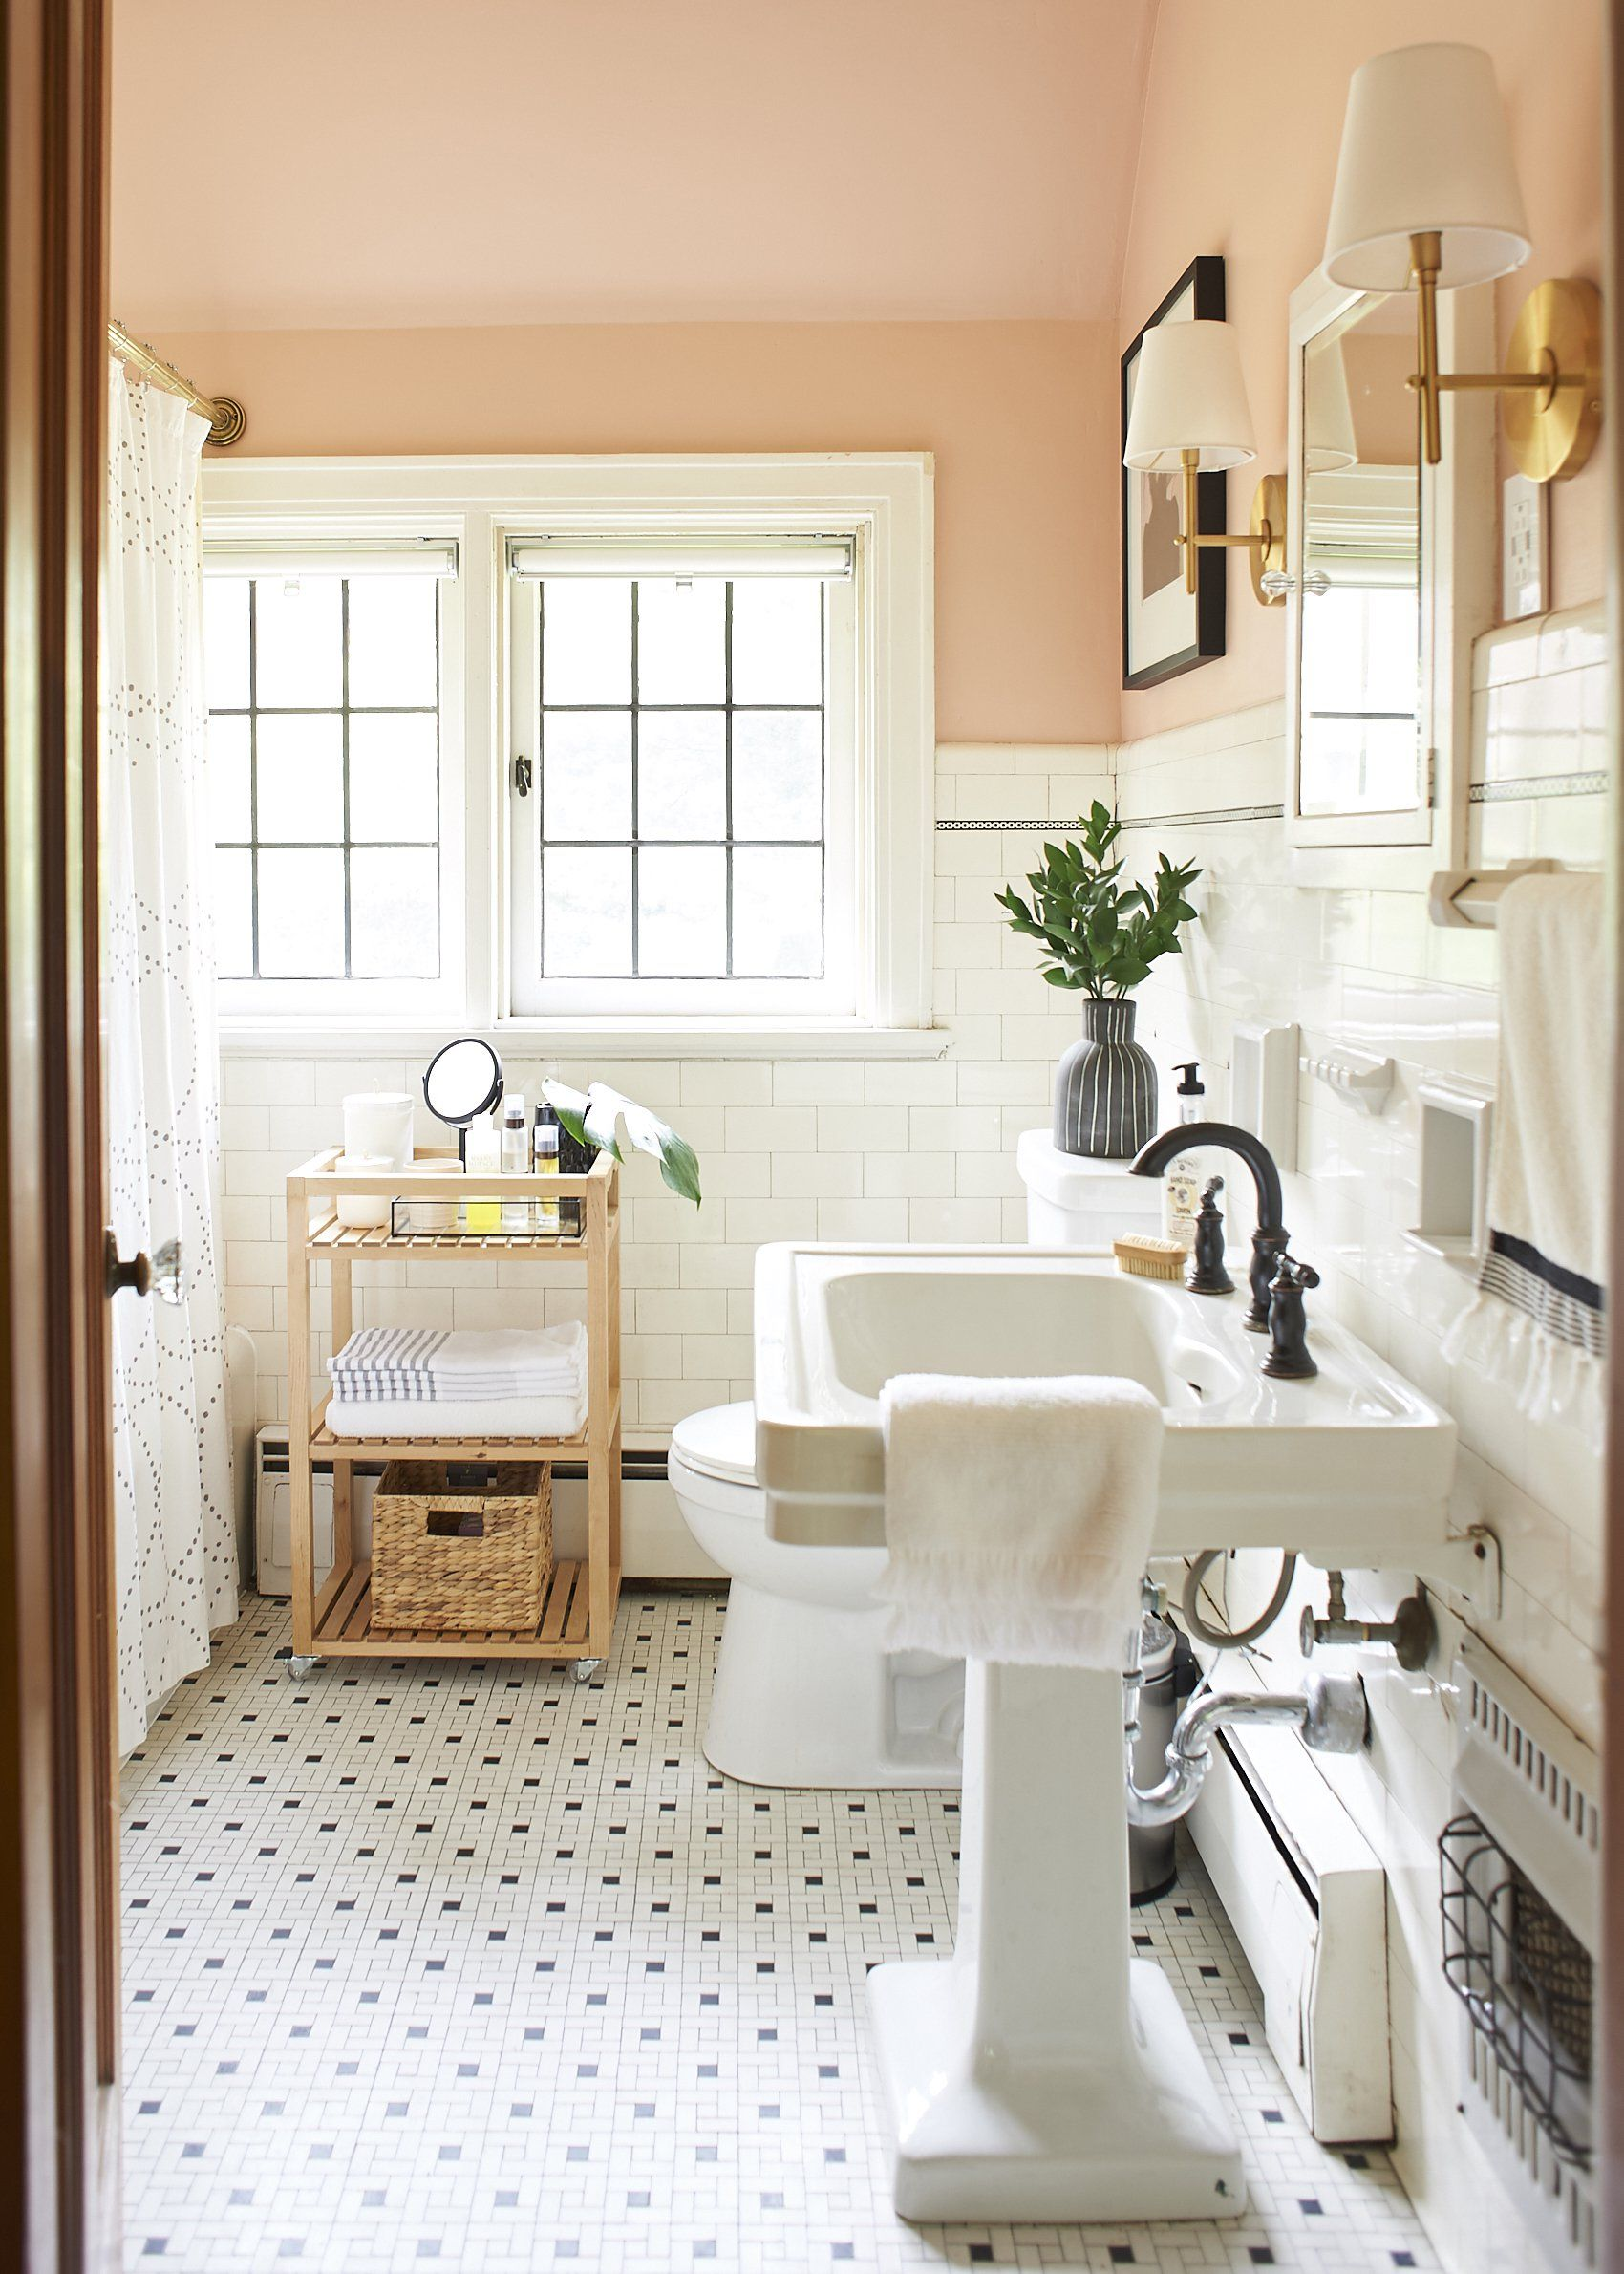 Superieur Mini Home Updates :: A Bathroom Refresh!